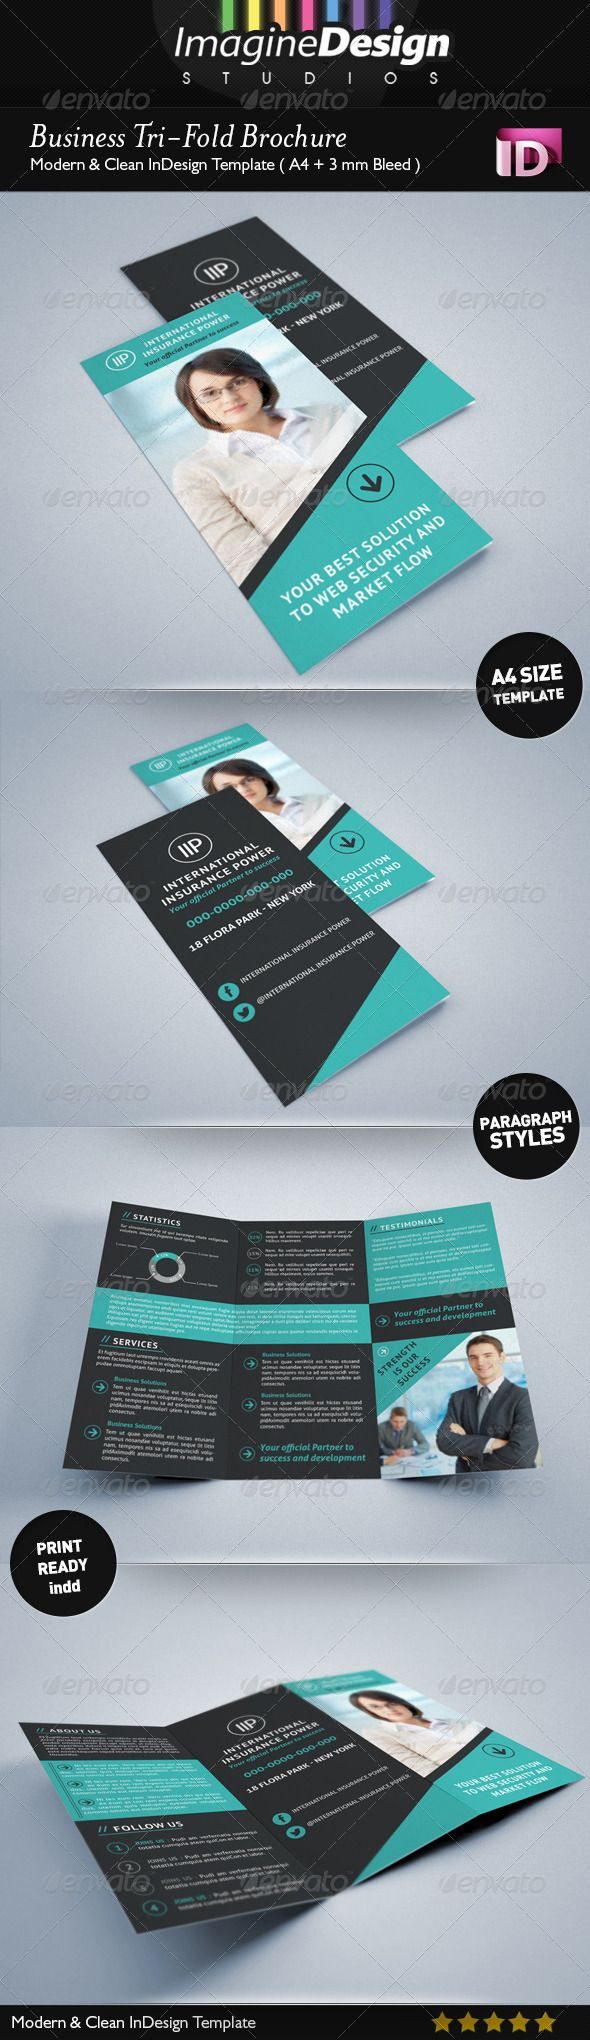 Best Fold Brochure Ideas On Pinterest Tri Fold Tri Fold - Business tri fold brochure templates